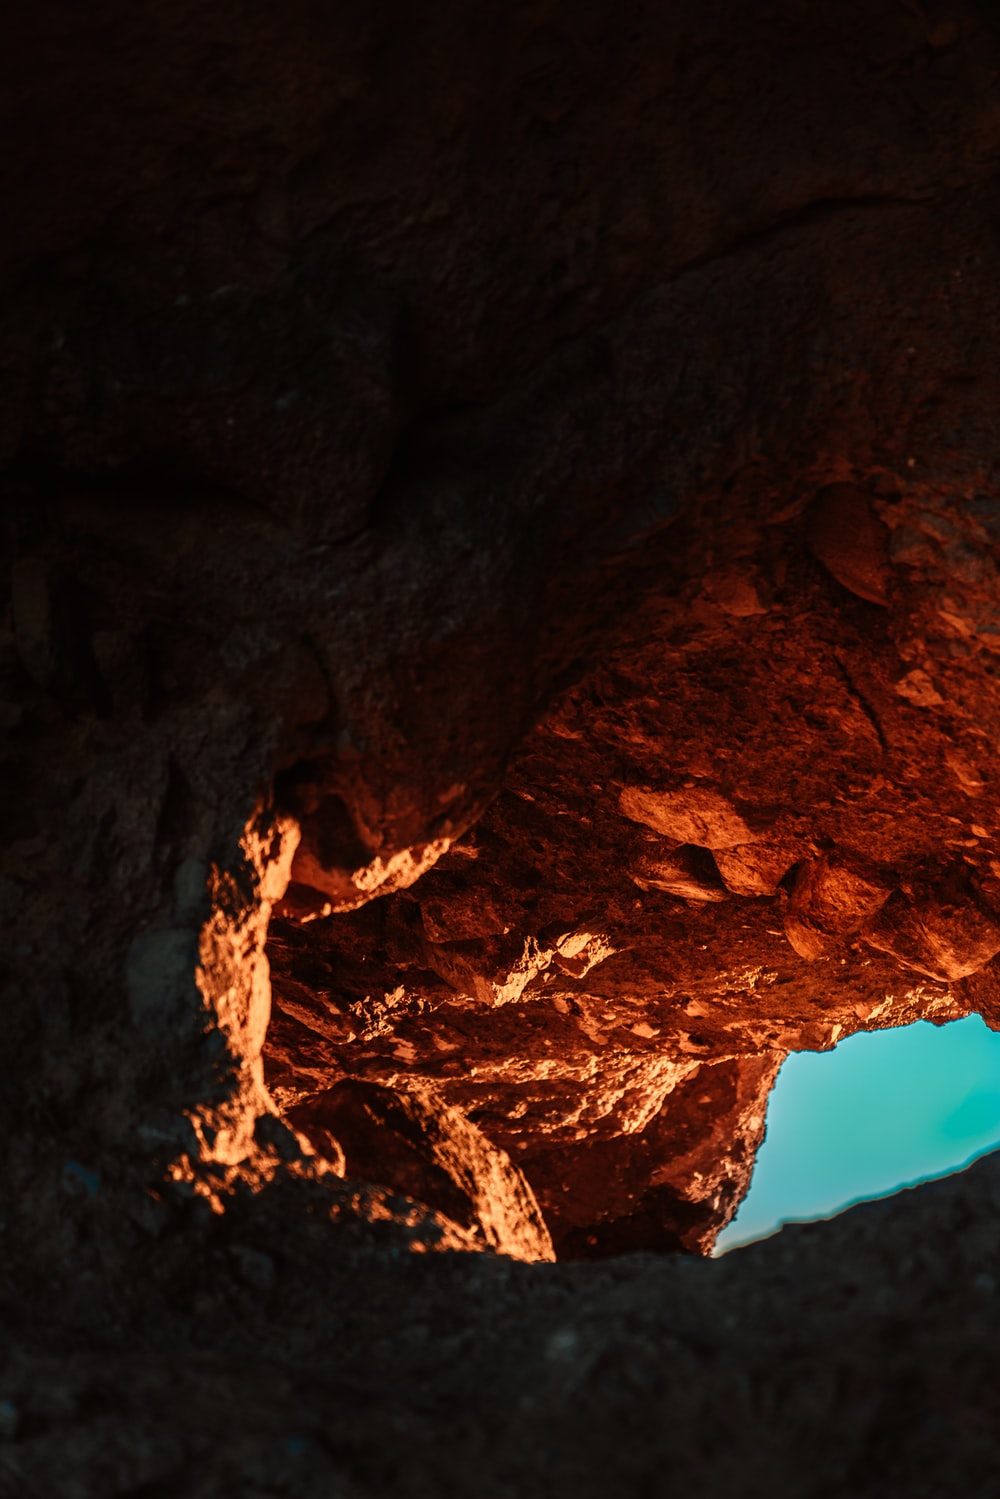 rocky cave during day